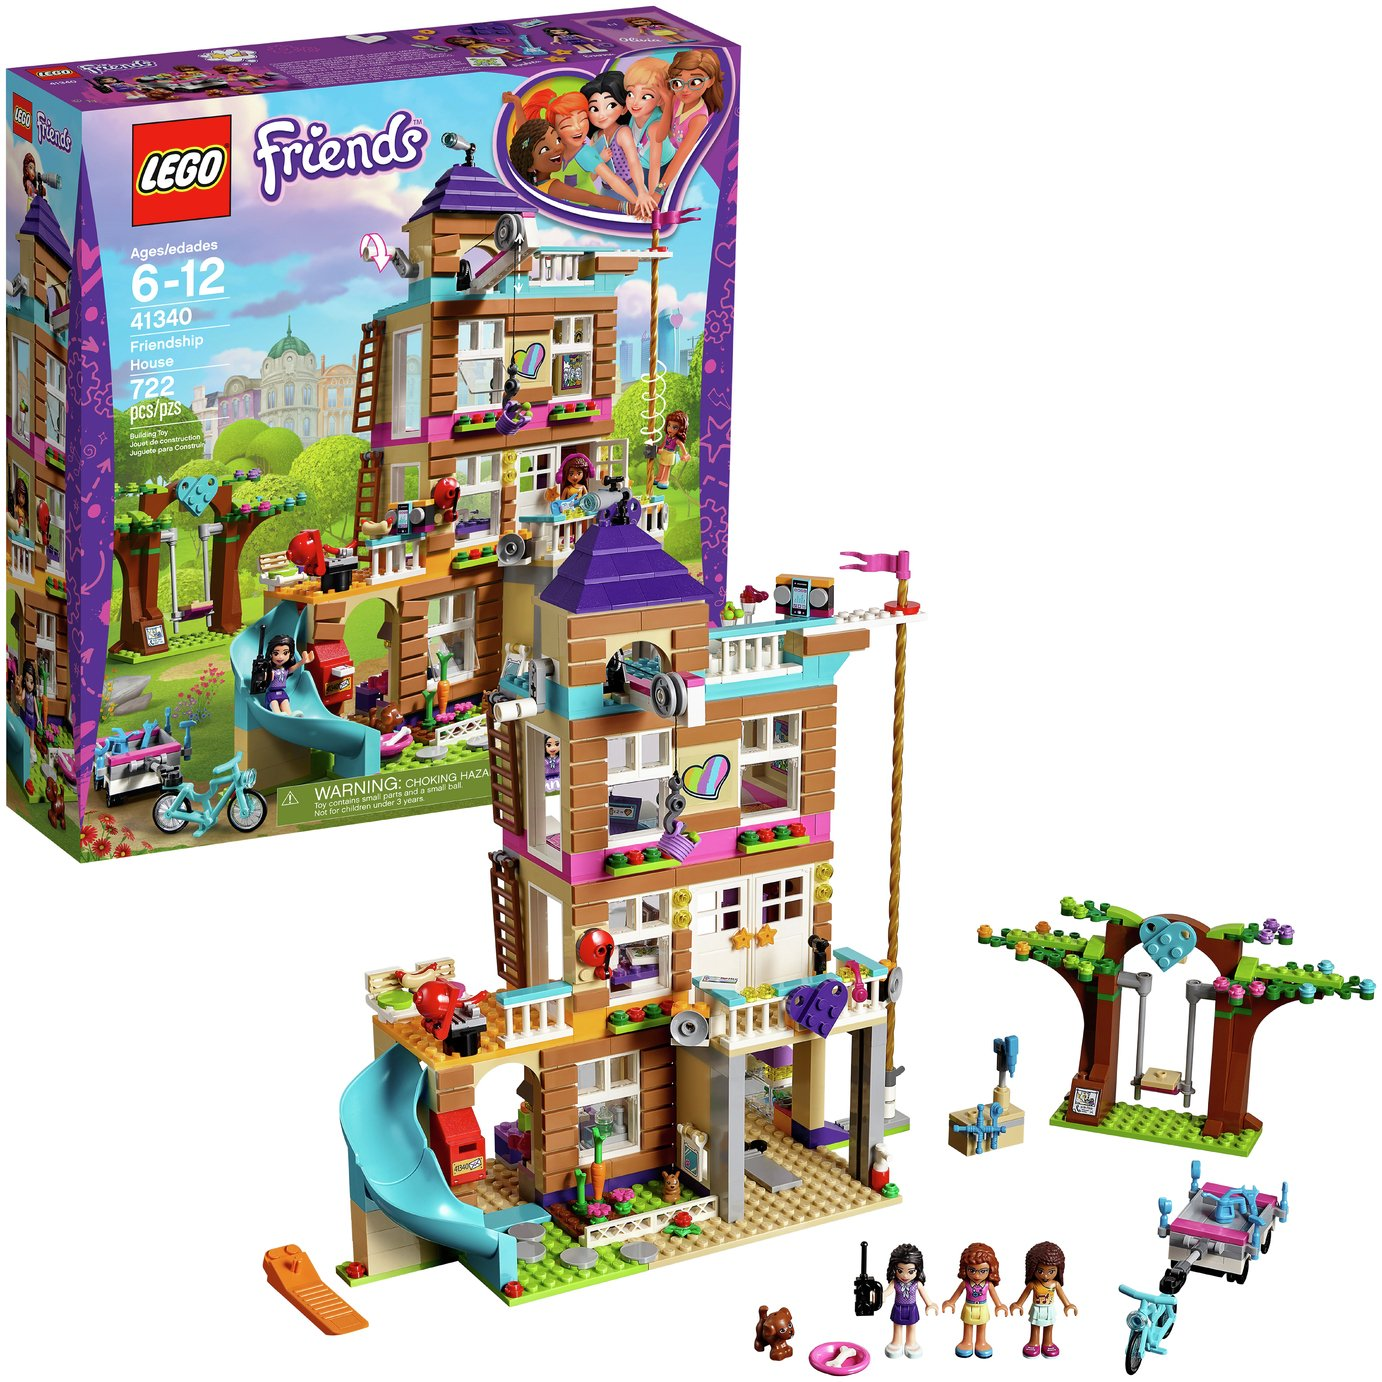 LEGO Friends Heartlake Friendship House Building Set   41340